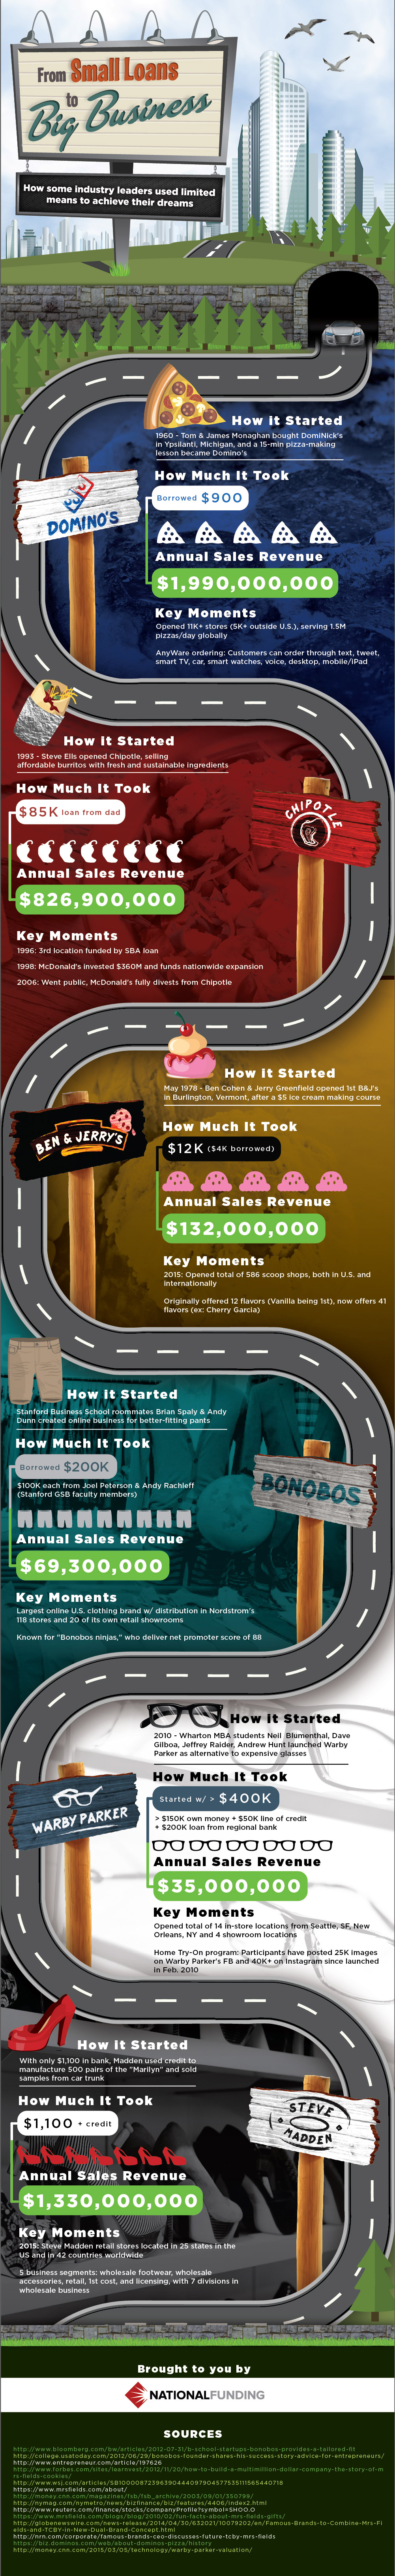 From Small Loans To Big Business - Many corporations began as small businesses. Our infographic illustrates how a small business loan could start you on a road to becoming a big business.